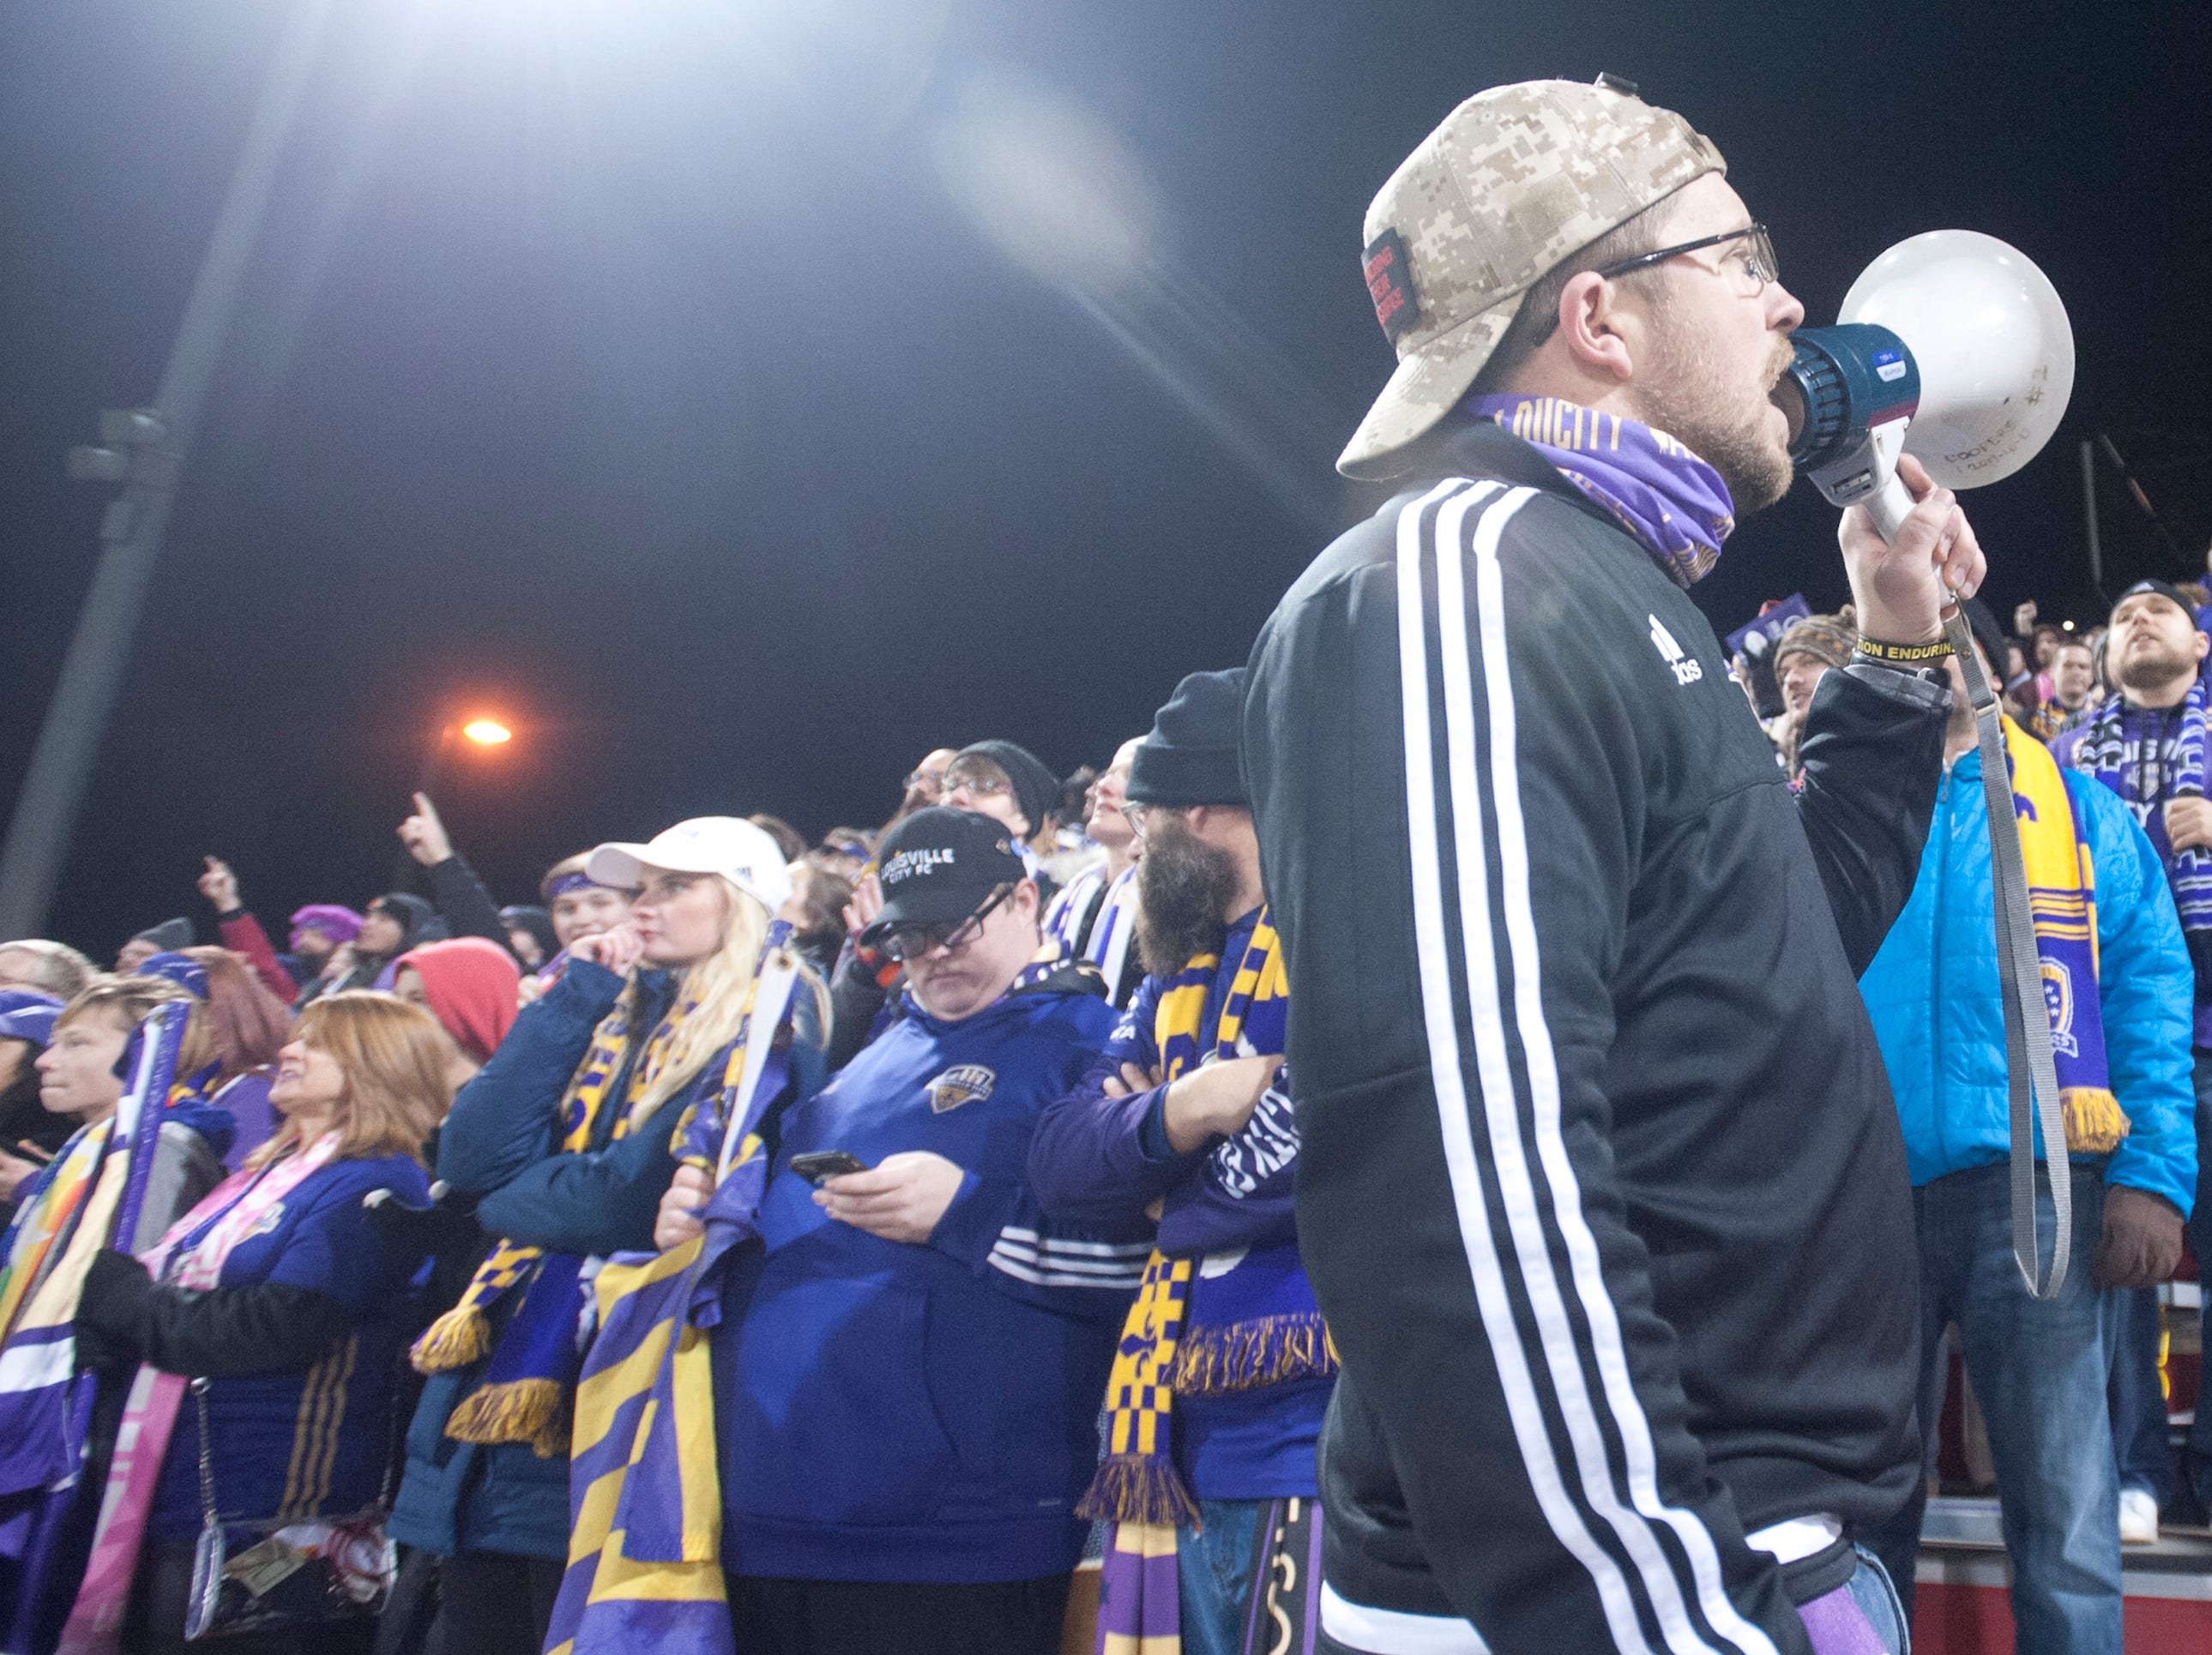 Alex Miner, vice president of the Louisville Coopers fan club works the megaphone as Louisville City FC takes on the Phoenix Rising FC for the 2018 USL Cup.November 08, 2018